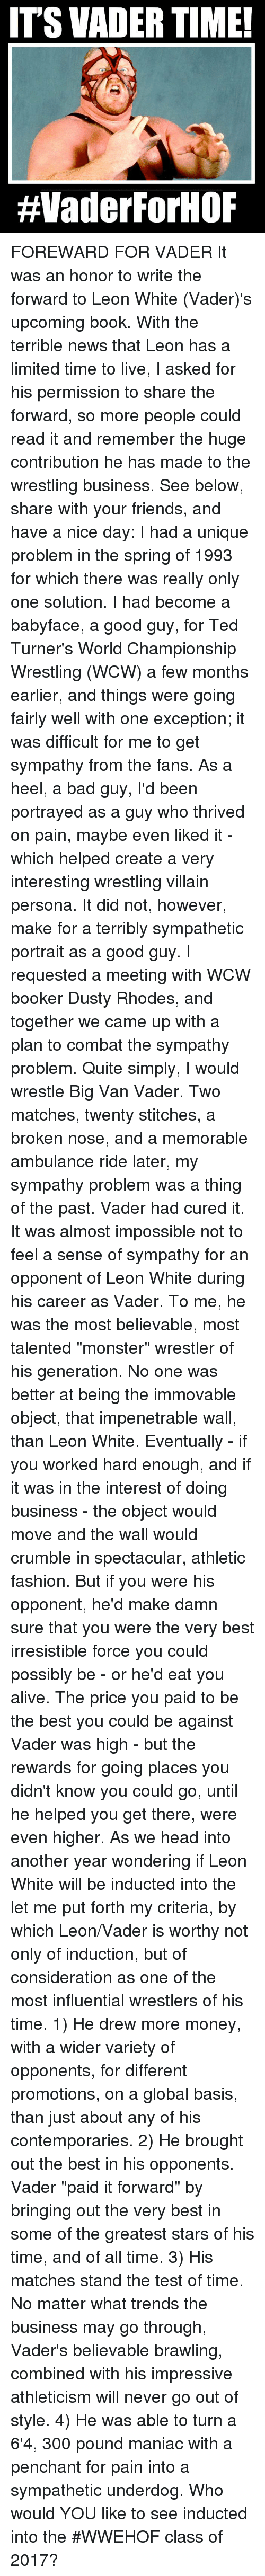 """irresistable: ITS VADER TIME!  HVaderForHOF FOREWARD FOR VADER It was an honor to write the forward to Leon White (Vader)'s upcoming book. With the terrible news that Leon has a limited time to live, I asked for his permission to share the forward, so more people could read it and remember the huge contribution he has made to the wrestling business.  See below, share with your friends, and have a nice day:  I had a unique problem in the spring of 1993 for which there was really only one solution. I had become a babyface, a good guy, for Ted Turner's World Championship Wrestling (WCW) a few months earlier, and things were going fairly well with one exception; it was difficult for me to get sympathy from the fans. As a heel, a bad guy,  I'd been portrayed as a guy who thrived on pain, maybe even liked it -  which helped create a very interesting wrestling villain persona. It did not, however, make for a terribly sympathetic portrait as a good guy.   I requested a meeting with WCW booker Dusty Rhodes, and together we came up with a plan to combat the sympathy problem. Quite simply, I would wrestle Big Van Vader. Two matches, twenty stitches, a broken nose, and a memorable ambulance ride later, my sympathy problem was a thing of the past. Vader had cured it.   It was almost impossible not to feel a sense of sympathy for an opponent of Leon White during his career as Vader. To me, he was the most believable, most talented """"monster"""" wrestler of his generation. No one was better at being the immovable object, that impenetrable wall, than Leon White.  Eventually - if you worked hard enough, and if it was in the interest of doing business - the object would move and the wall would crumble in spectacular, athletic fashion. But if you were his opponent, he'd make damn sure that you were the very best irresistible force you could possibly be - or he'd eat you alive. The price you paid to be the best you could be against Vader was high - but the rewards for going places you didn"""